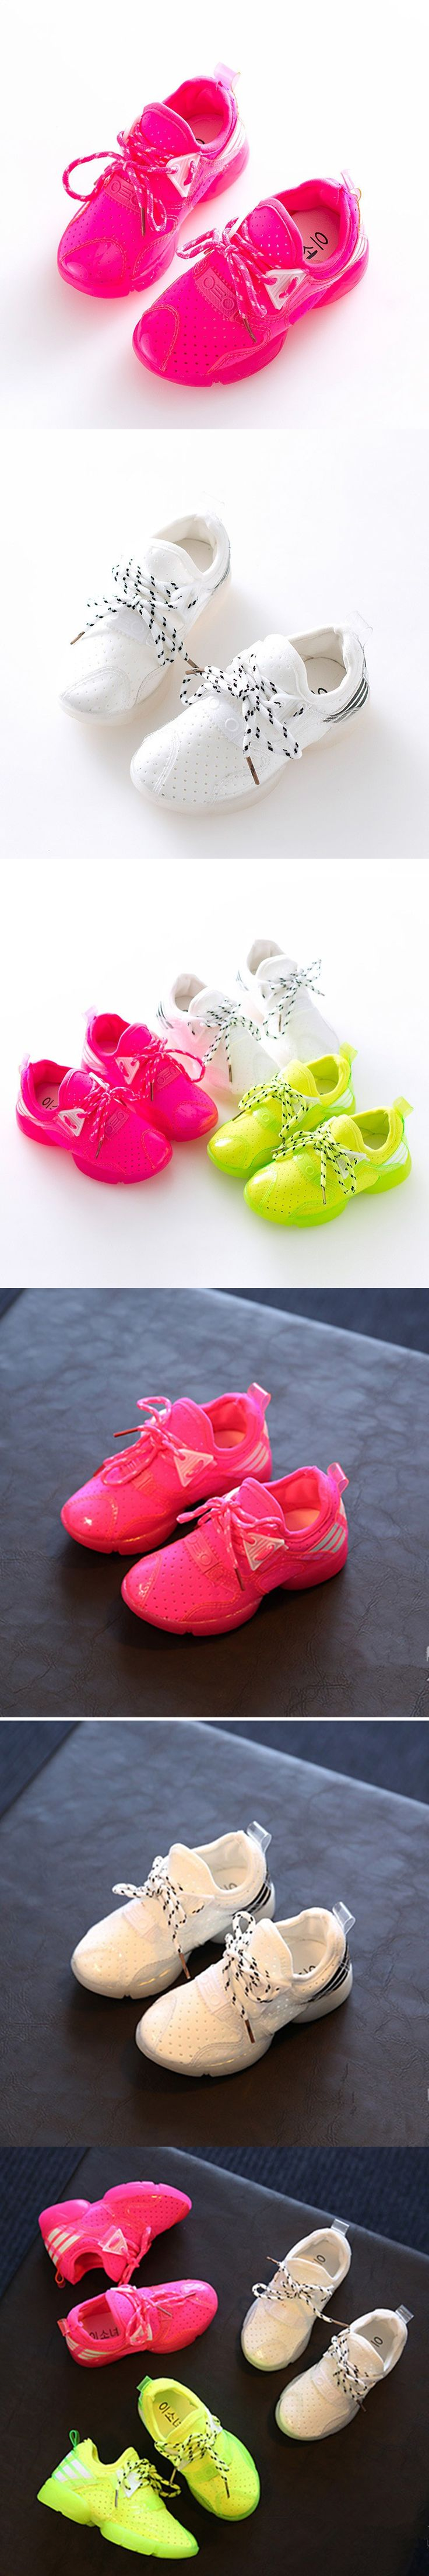 2016 Breathable White Girls Sneakers Casual Candy Color Shoes Girl Lace Up Kids Running Shoes Meisjes Schoenen Chaussure Fille